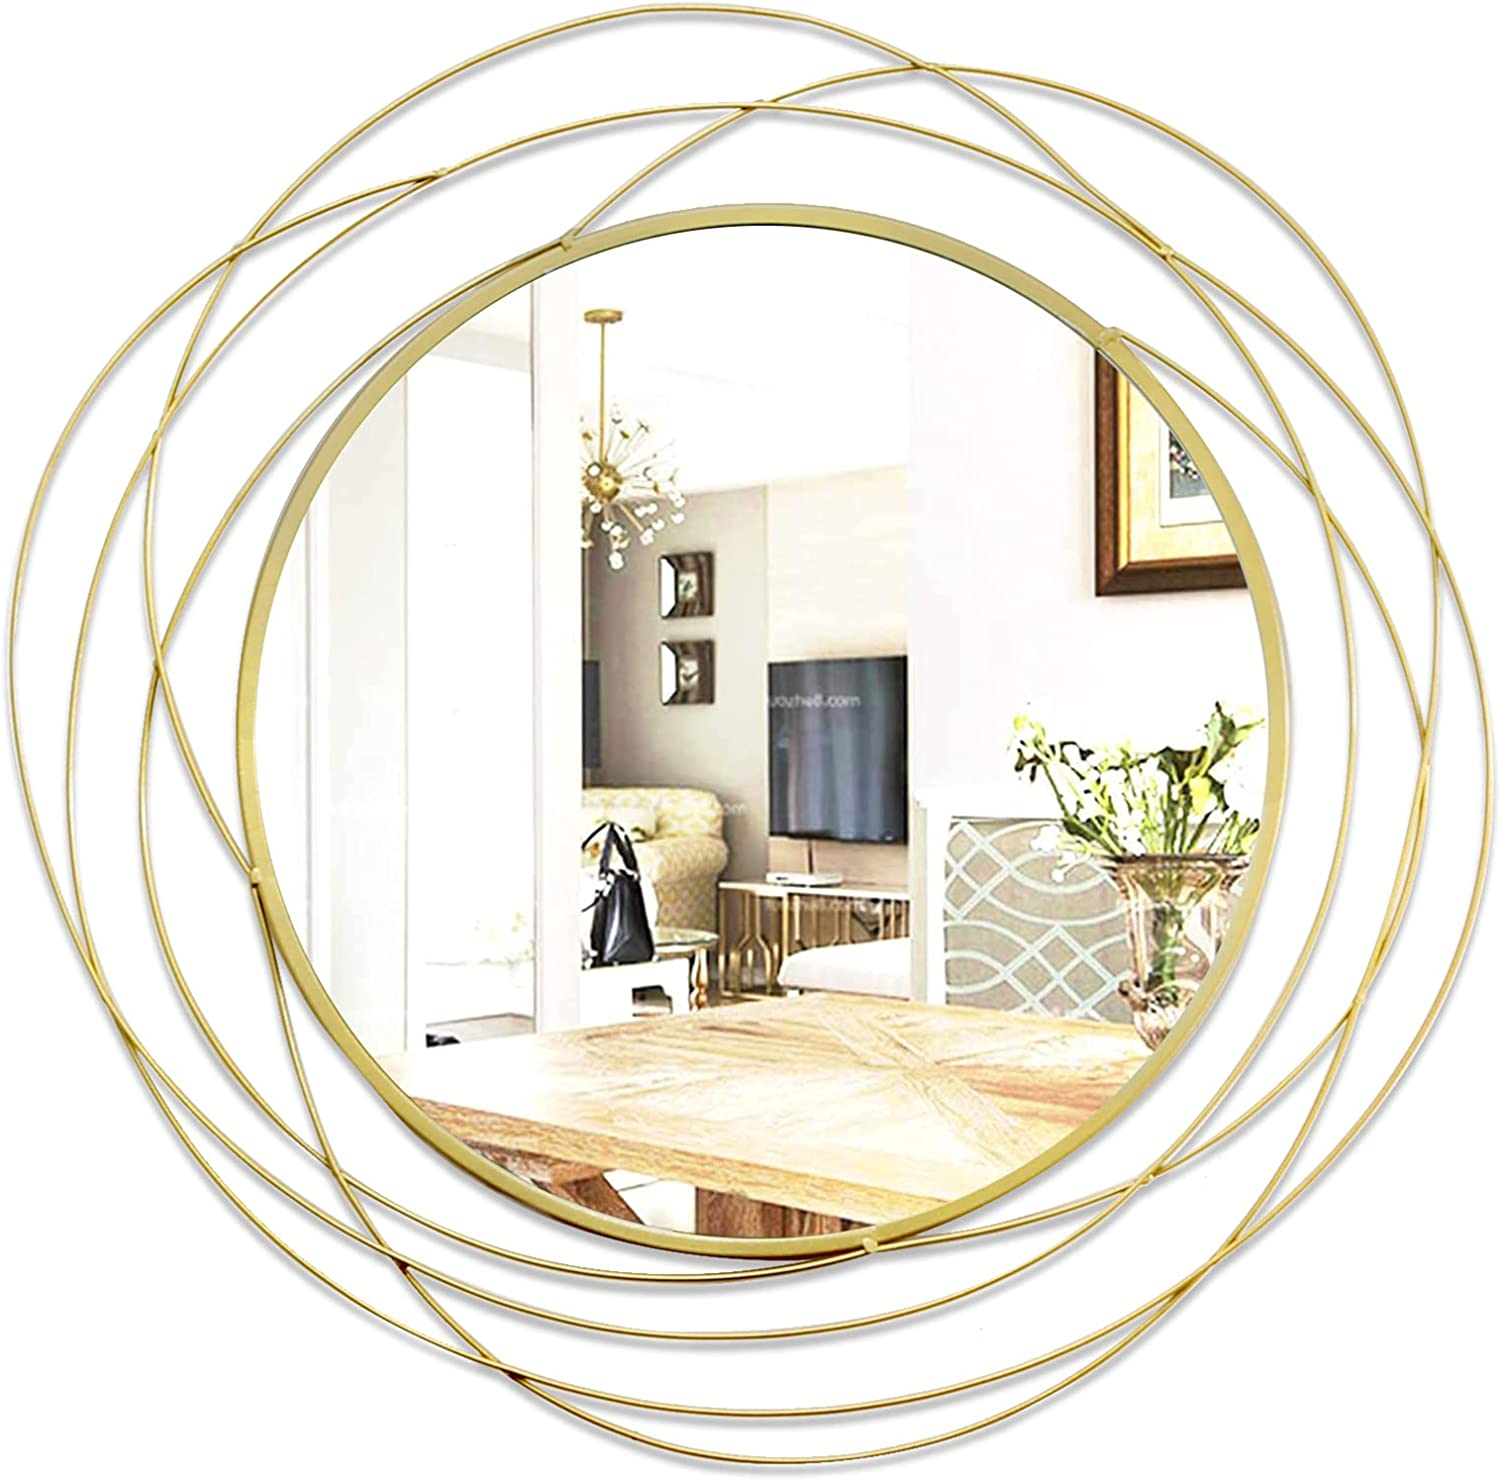 """ironsmithn Wall Mirror Mounted Round Decorative Mirrors Circle for Bathroom Vanity, Living Room or Bedroom 26.8"""" x26.8""""(glod)"""